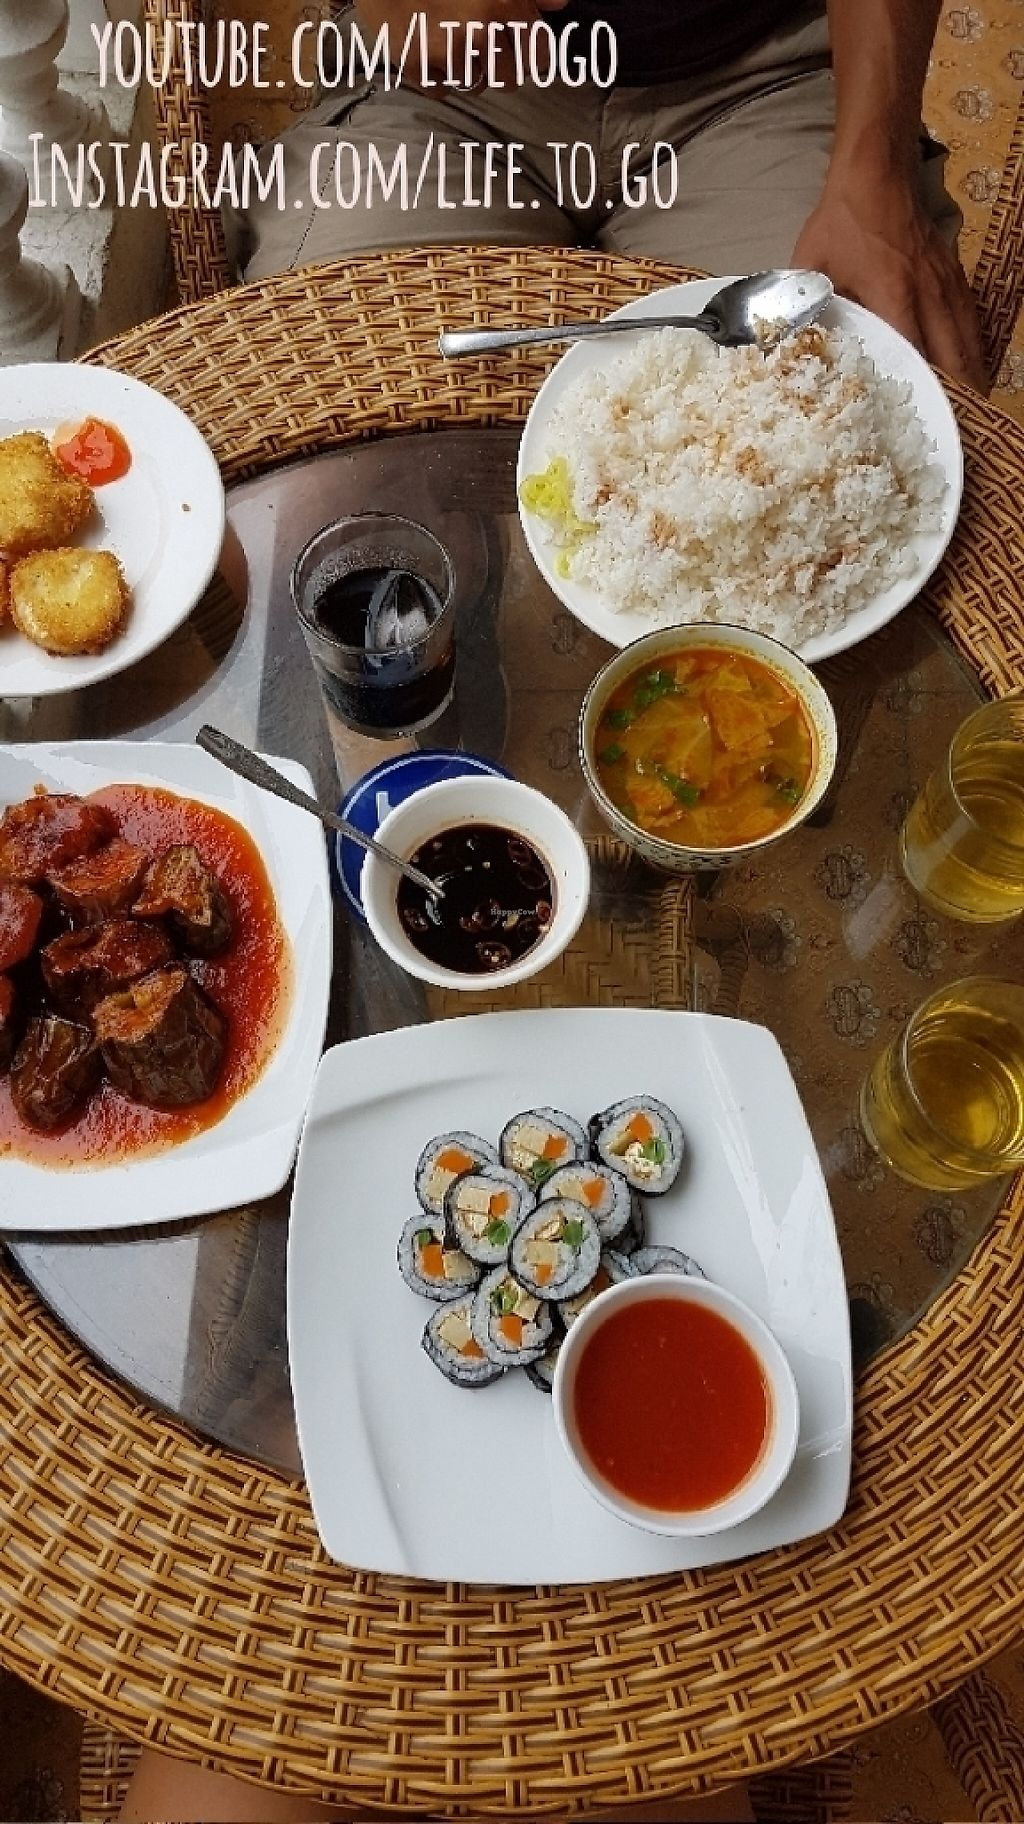 """Photo of An Nhien  by <a href=""""/members/profile/Lifetogo"""">Lifetogo</a> <br/>Yummie! Rice 10.000 VND, Sushi 30.000 VND, Eggplant 20.000 VND (or 30?), Crispy Tofu 20.000 VND <br/> May 15, 2017  - <a href='/contact/abuse/image/91296/258871'>Report</a>"""